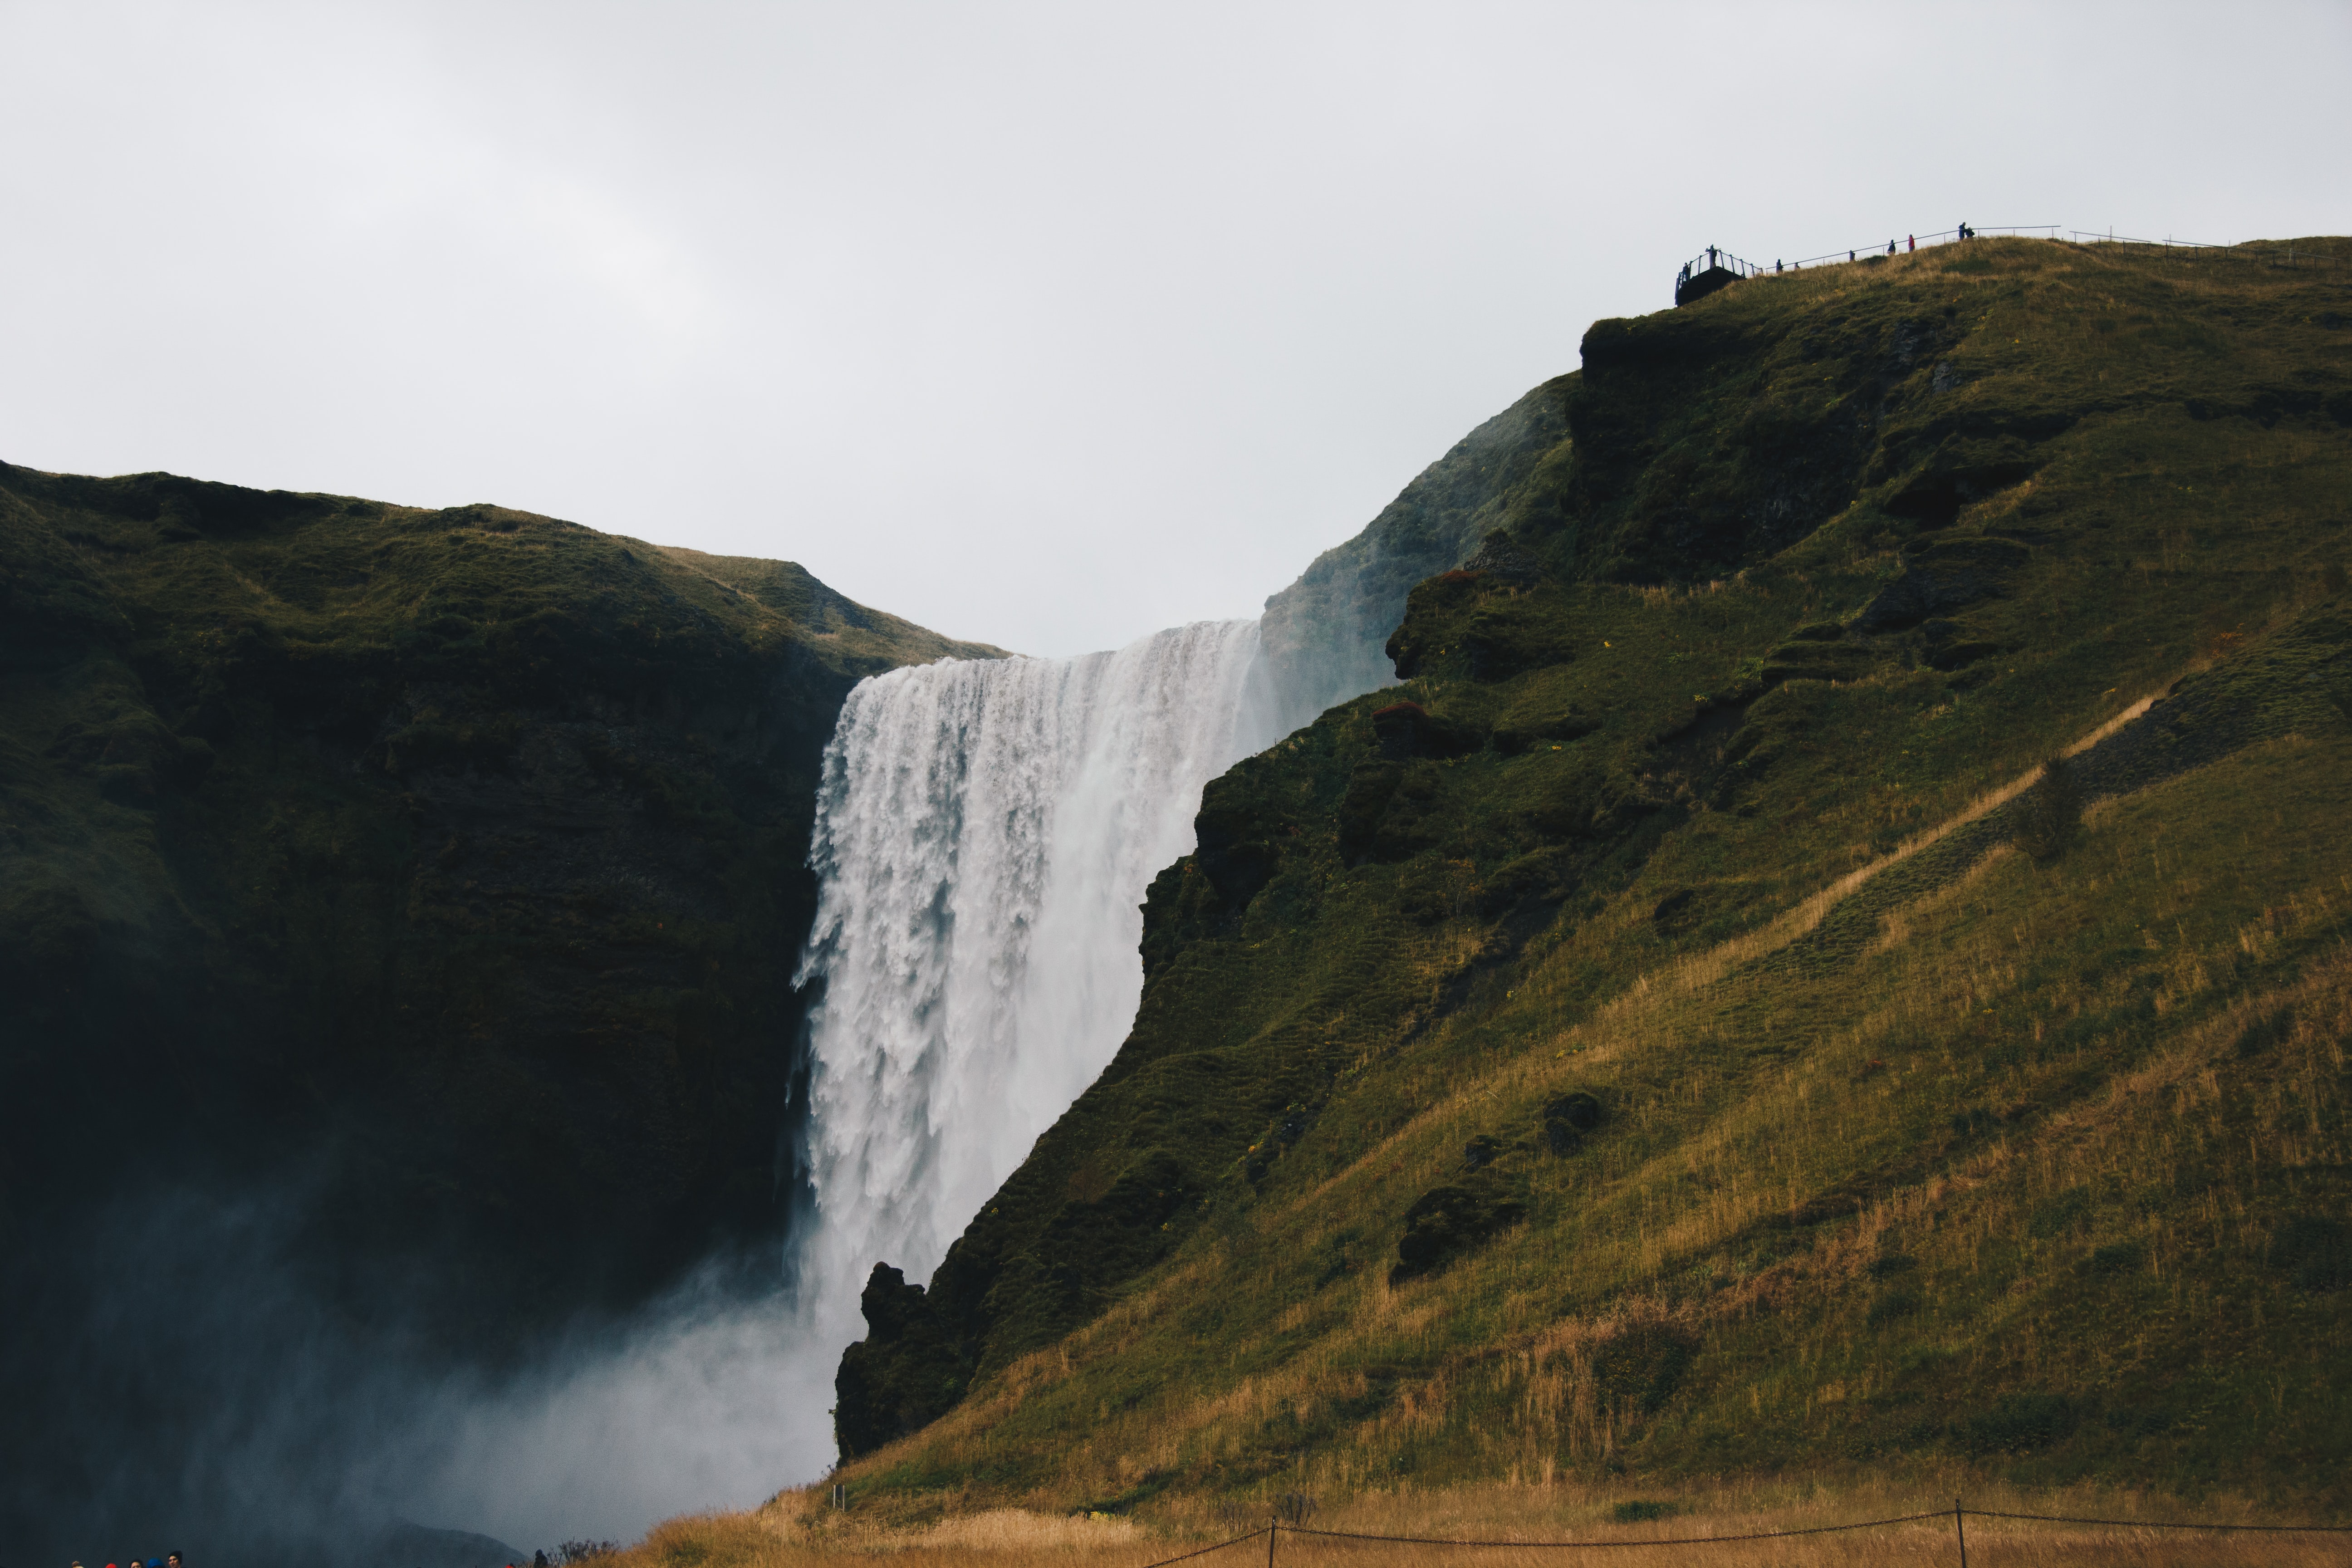 landscape photography of water falls and mountains